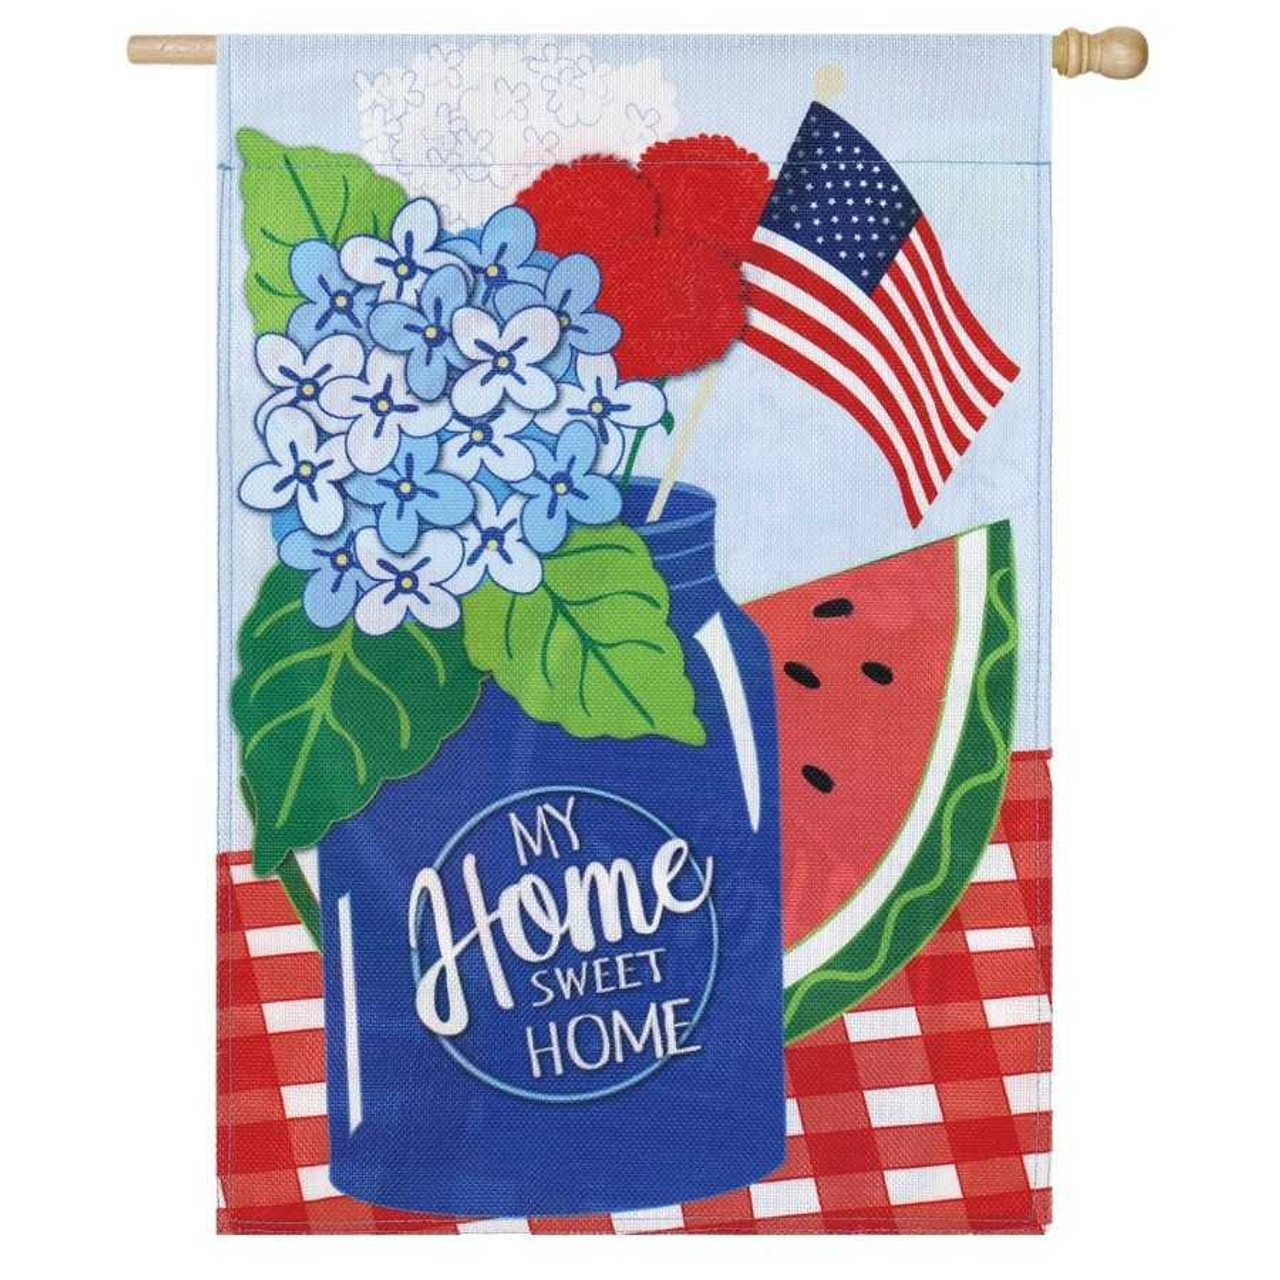 """A flag with a blue mason jar that says """"My Home Sweet Home."""" The jar is on a red plaid table. Inside the jar is blue and red flowers and American stick flag.  Behind the jar is a watermelon. The background is a sky blue."""